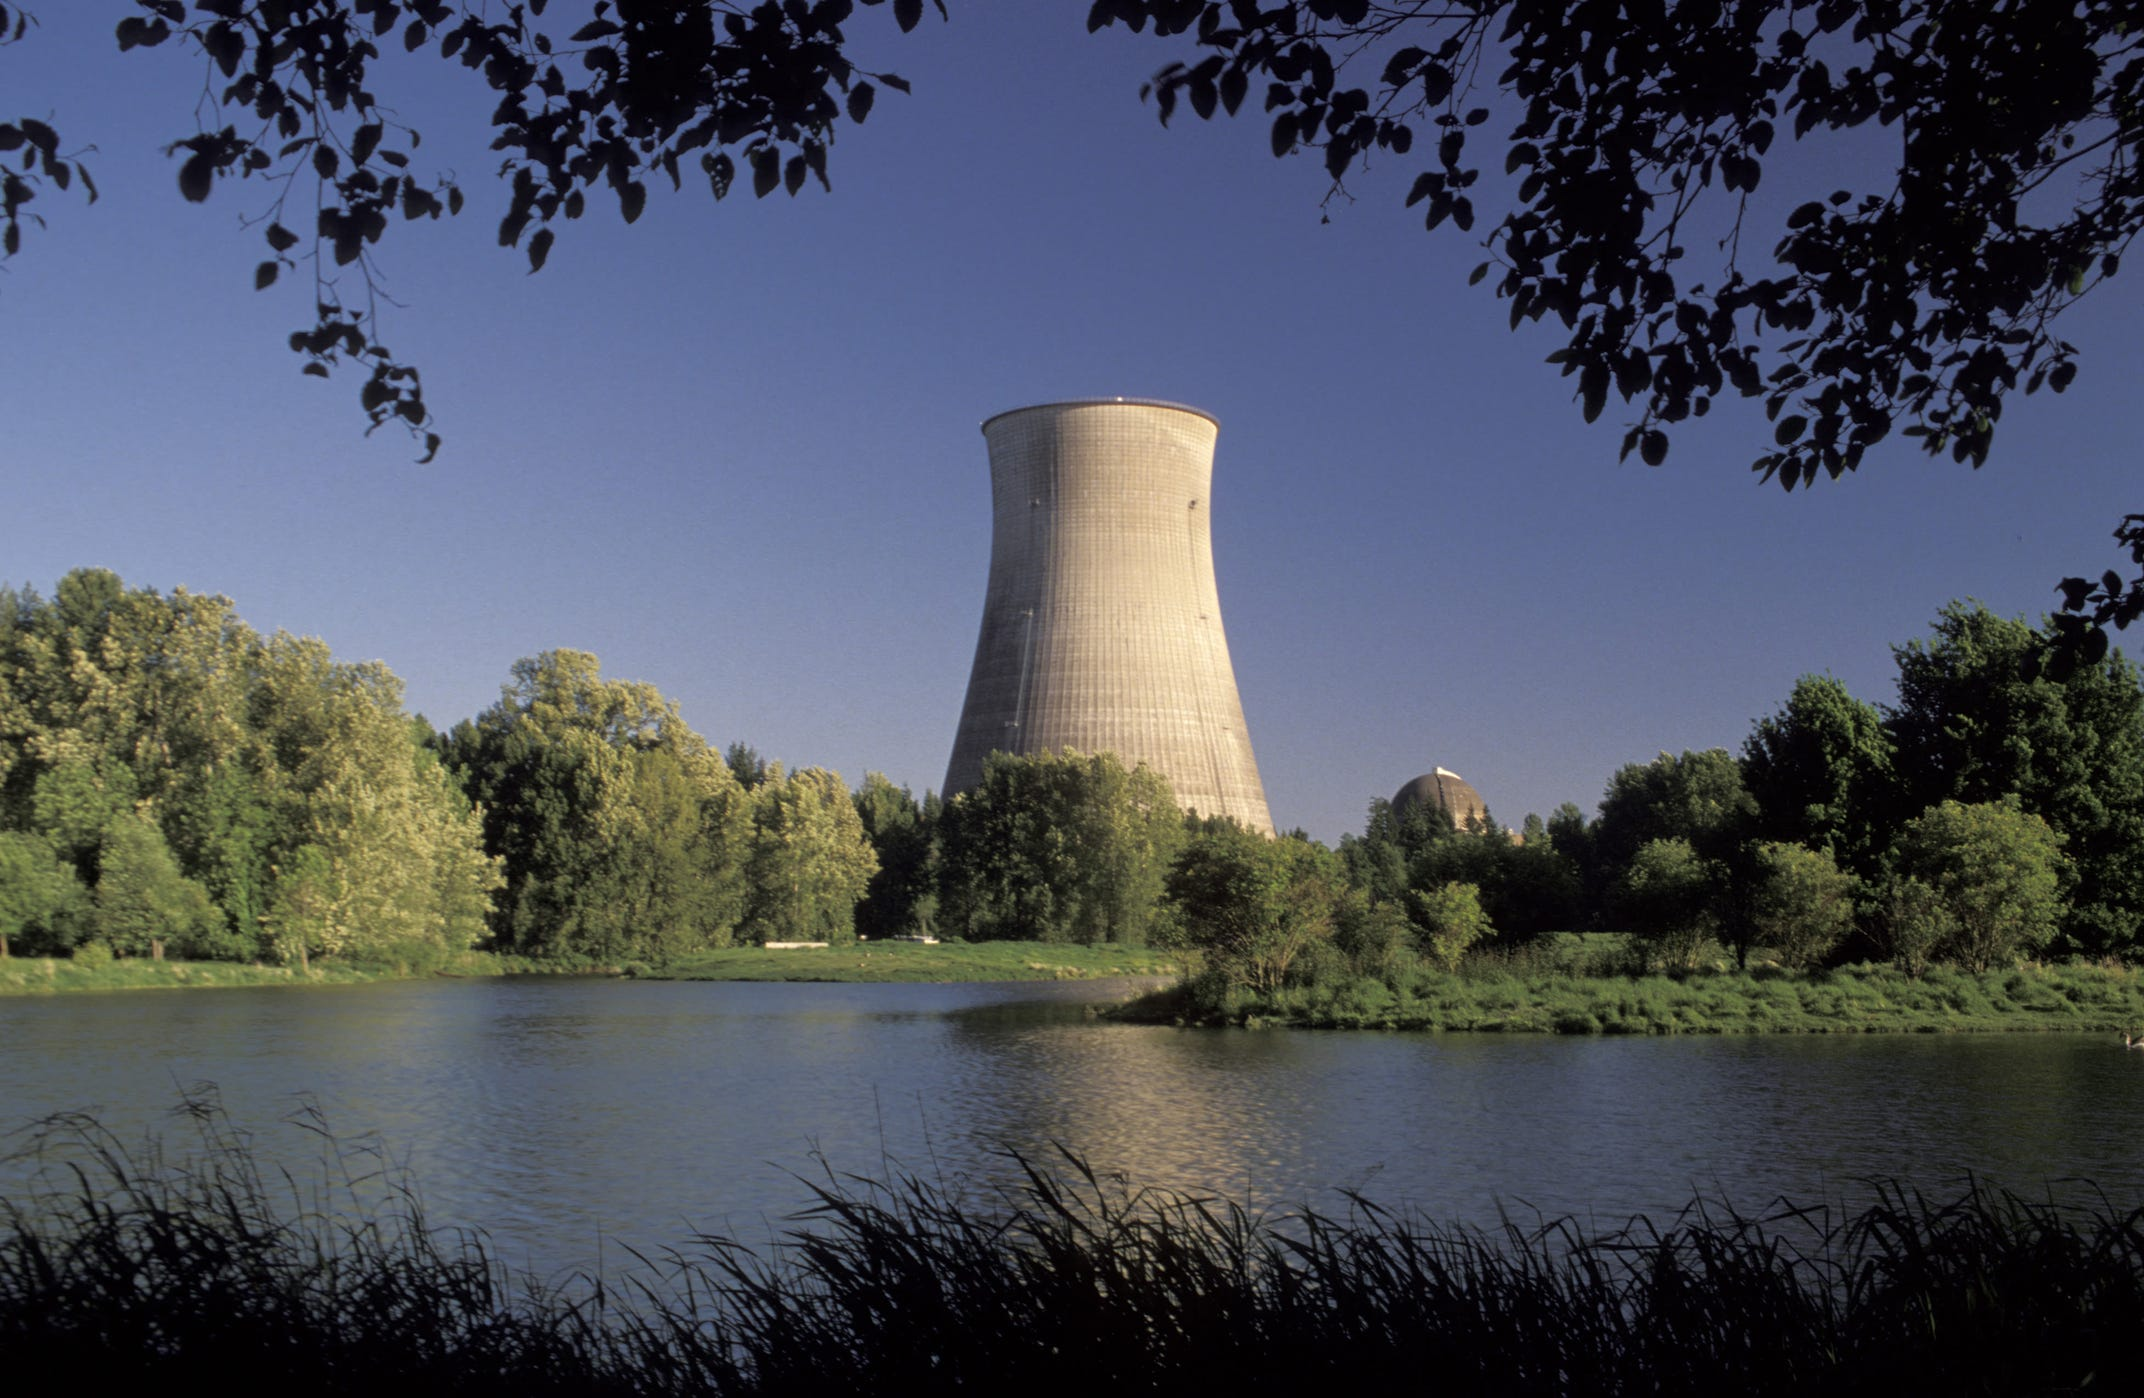 Compact prefab power plants may revive nuclear option